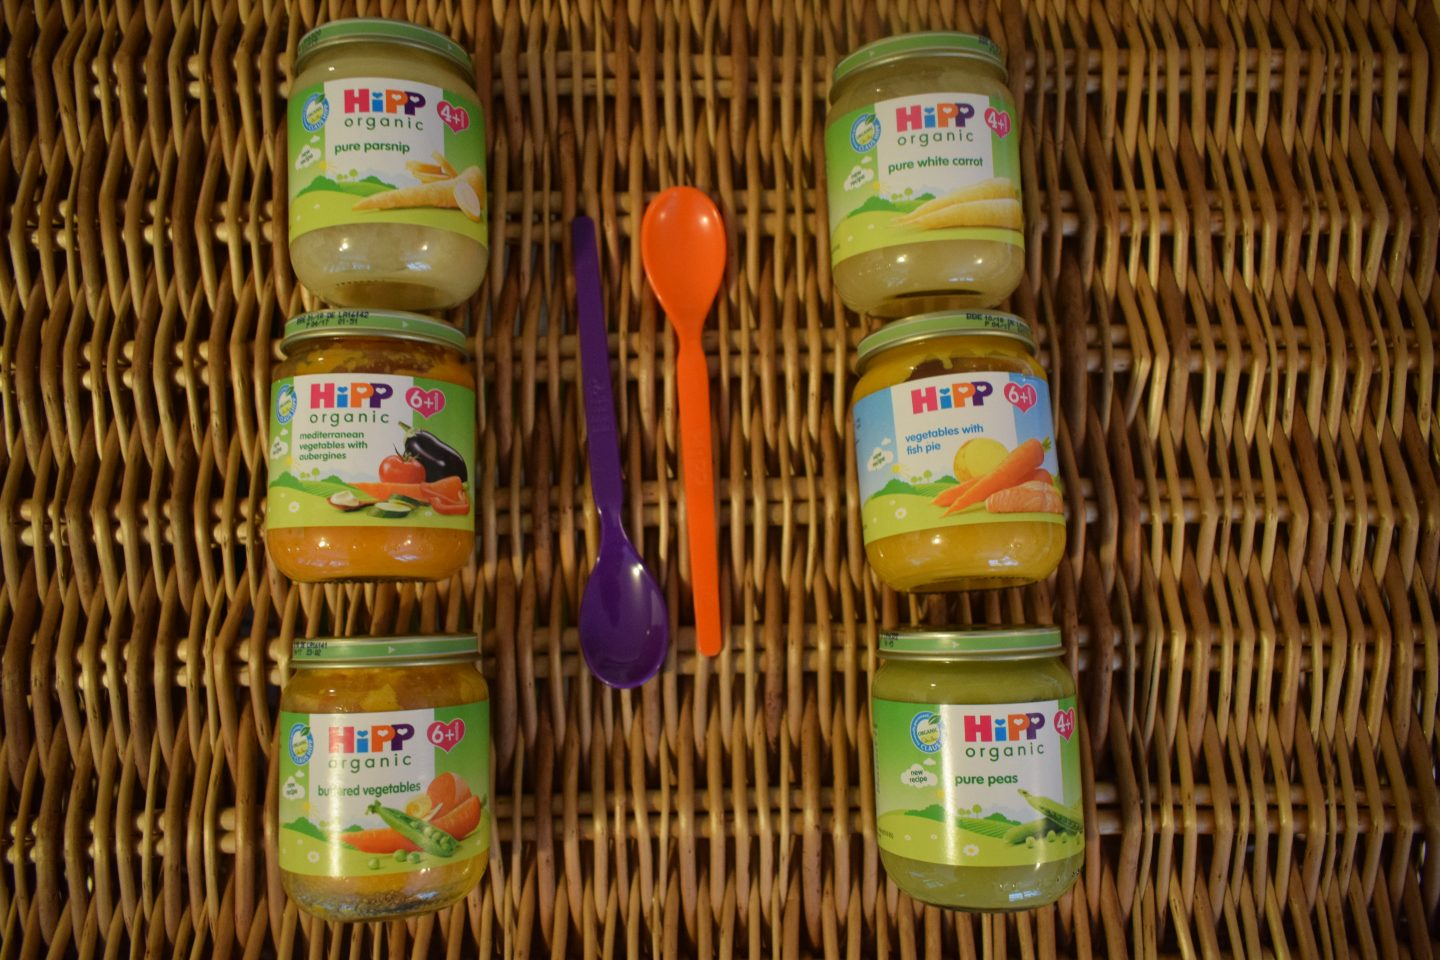 Weaning with HiPP Organic – review and #giveaway